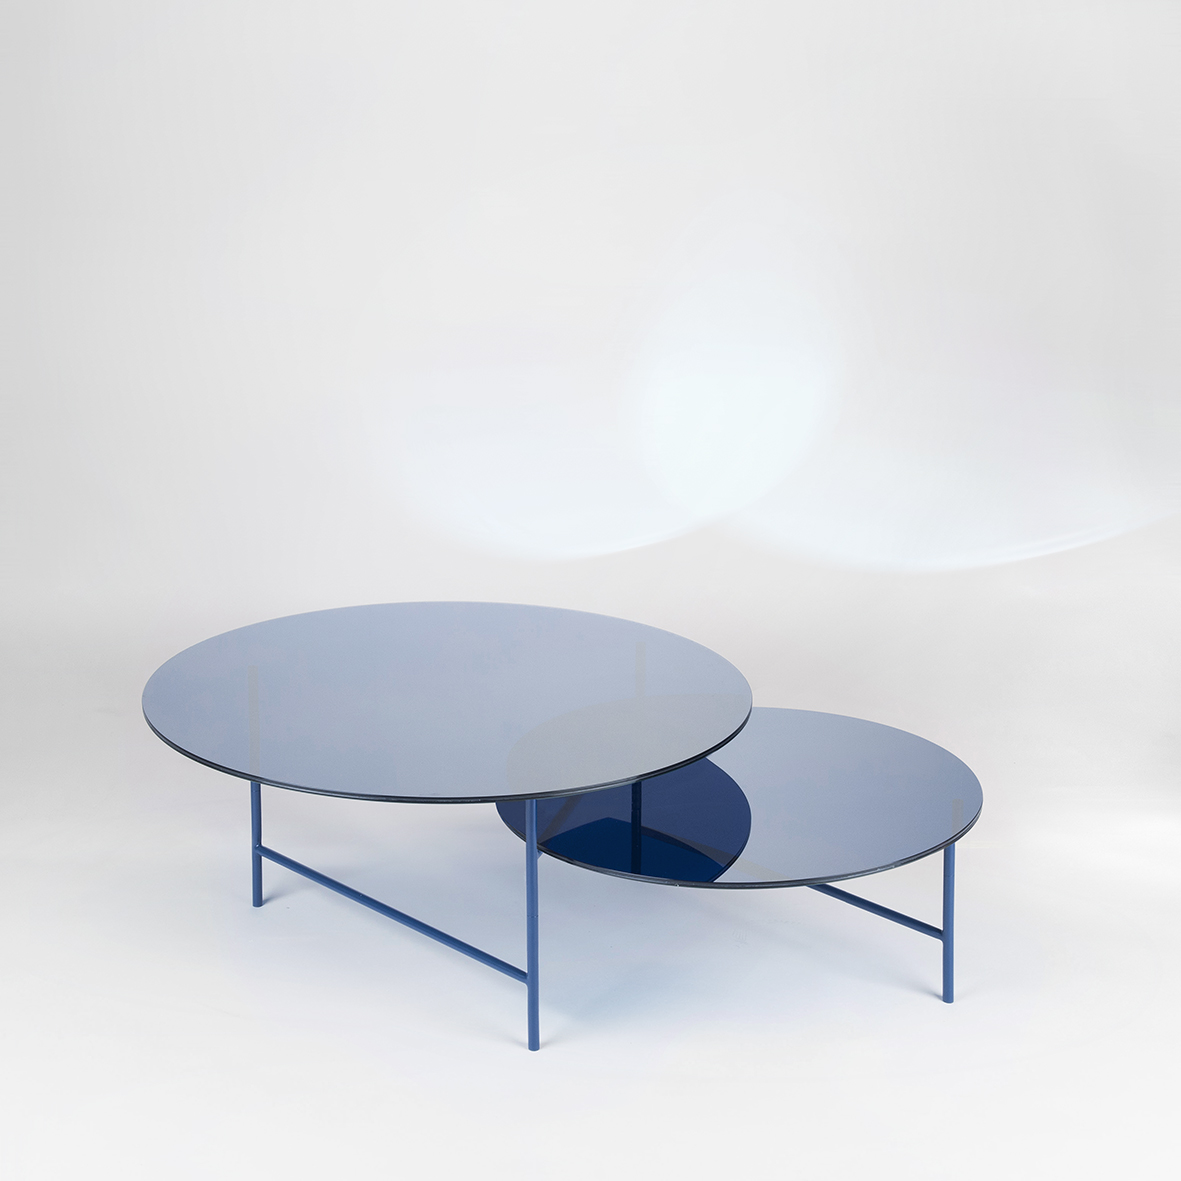 Zorro glas side table in blue